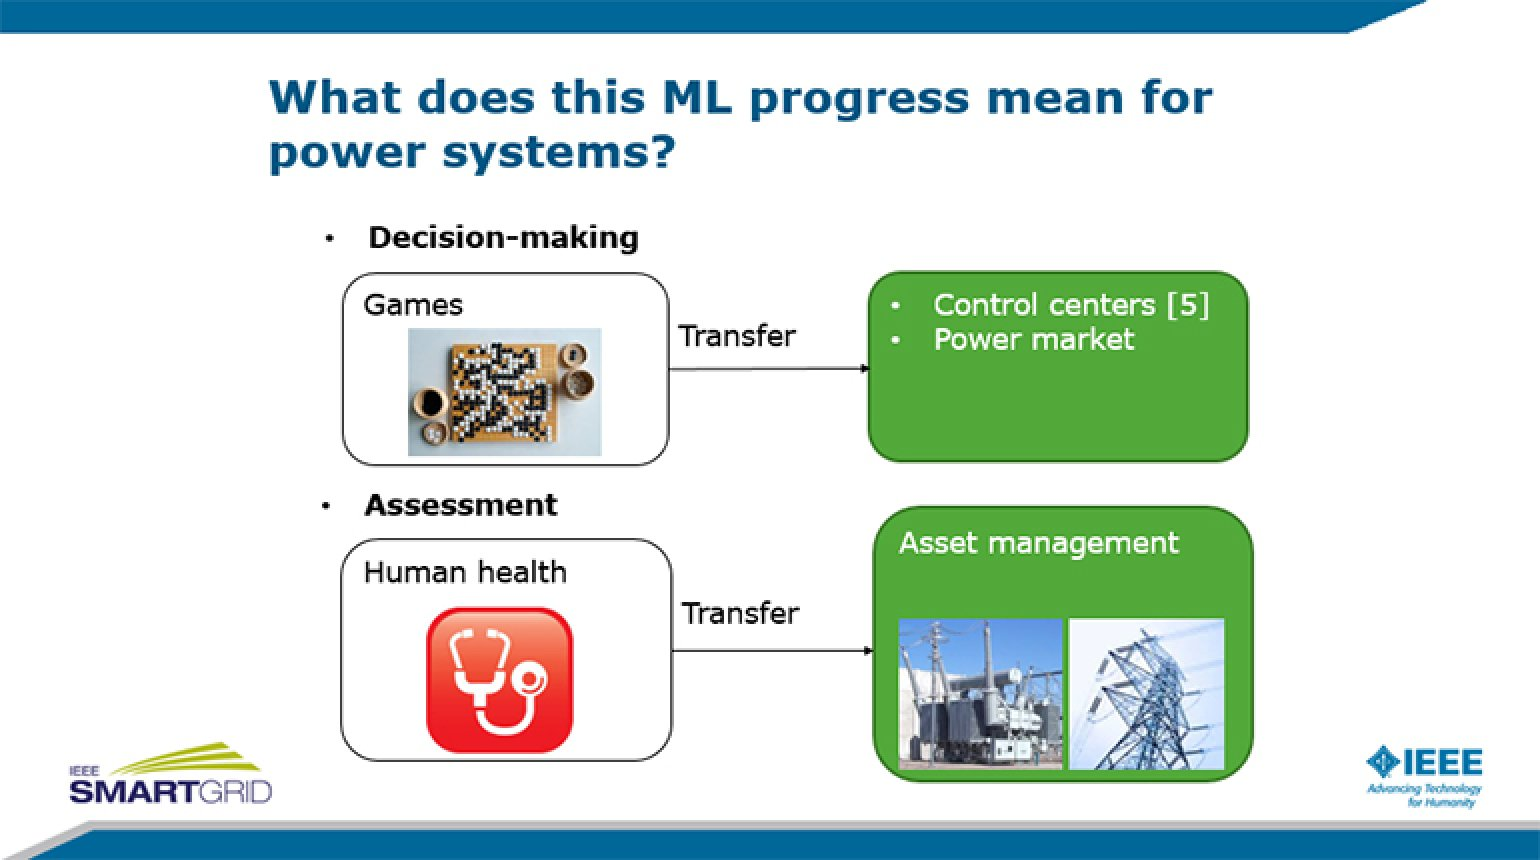 Application of Machine Learning in Power Systems- Part 1 presented by Qiuhua Huang